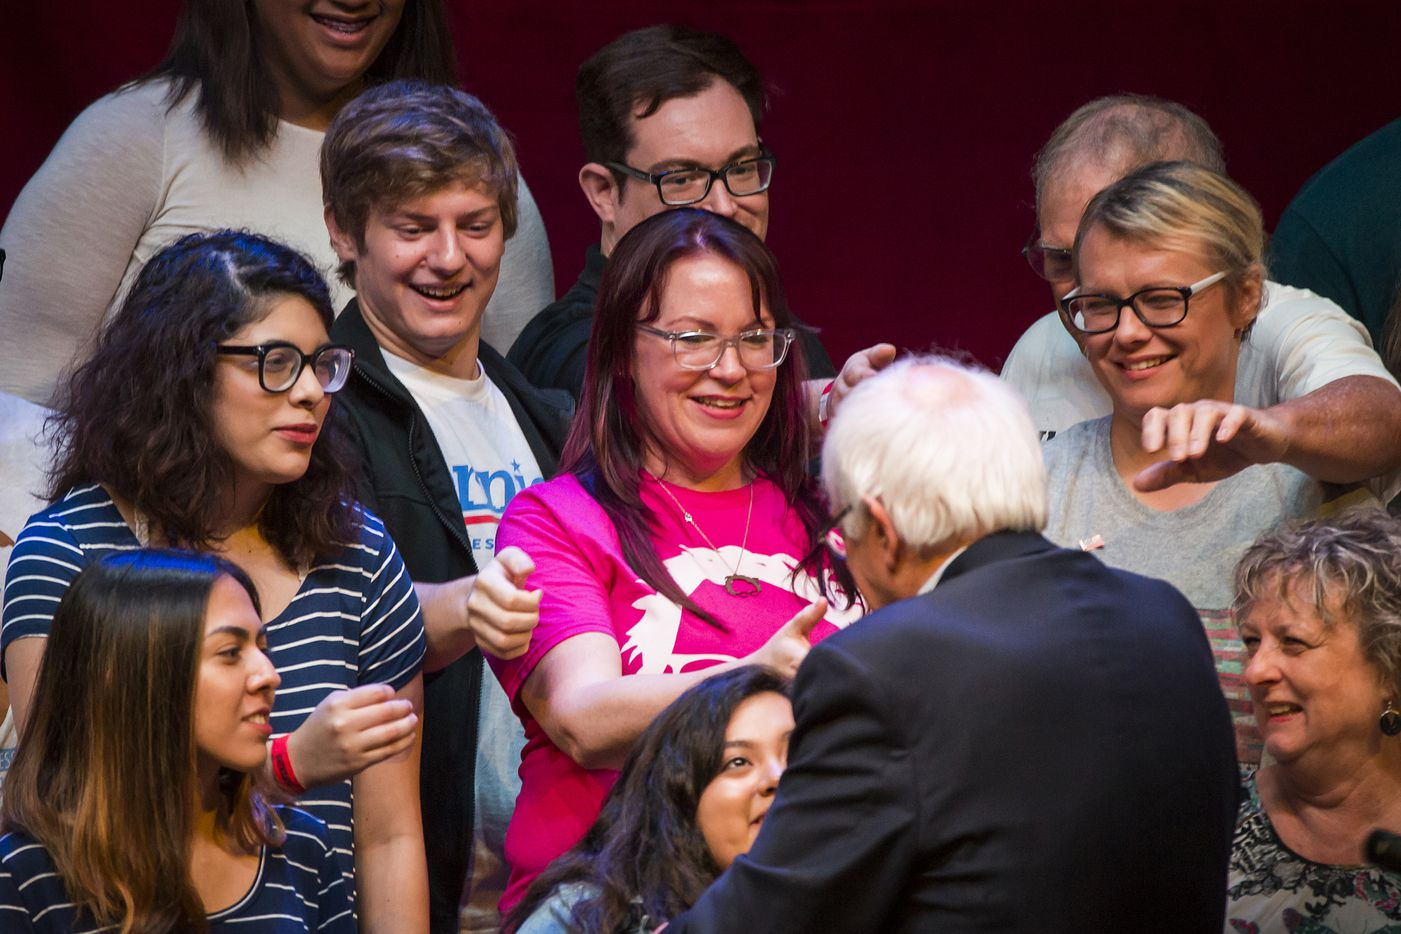 "Vermont senator Bernie Sanders shakes hands with supporters after speaking during a rally at the Verizon Theater on Thursday, April 20, 2017, in Grand Prairie, Texas. Sanders, the runner-up in the 2016 Democratic contest for president, appeared in North Texas as part of a national tour urging Democrats to ""Come Together and Fight Back"" against the agenda of President Trump."